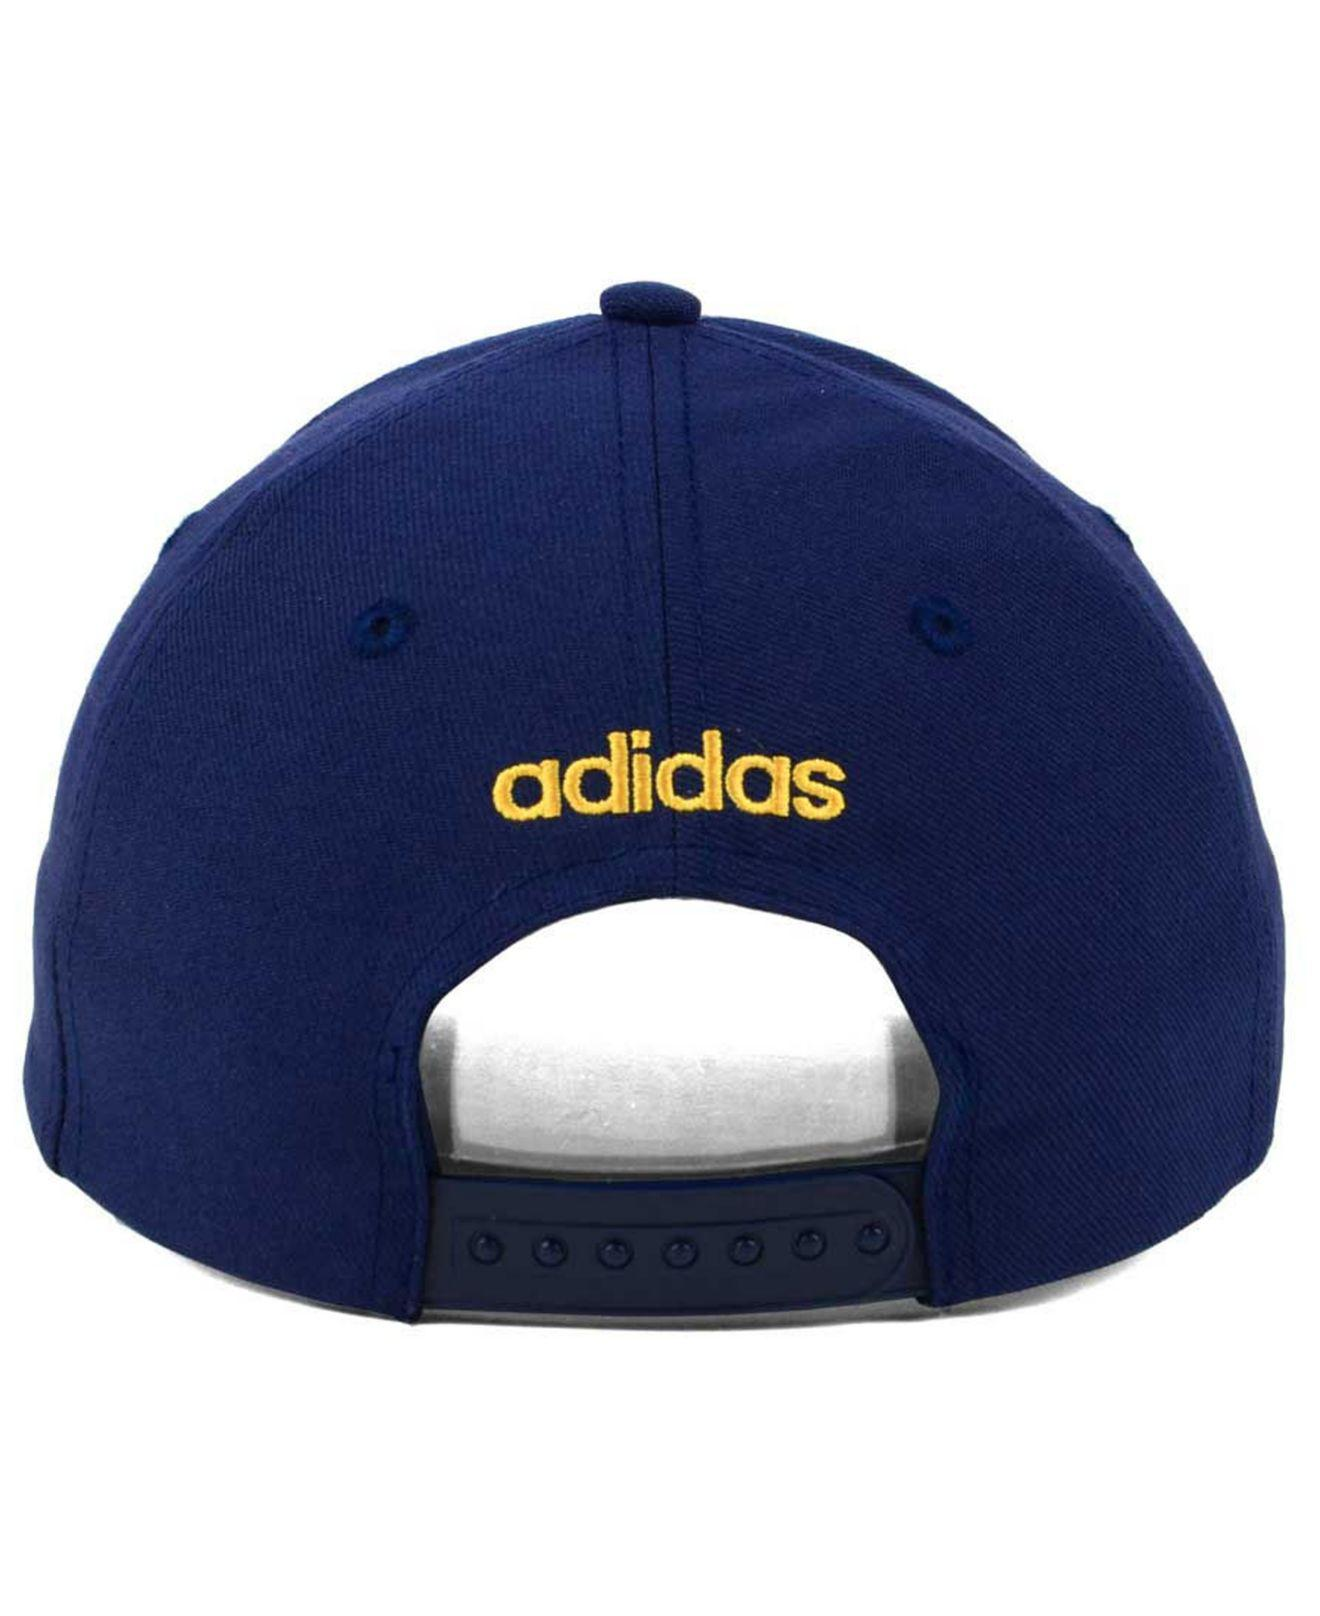 store lyst adidas core basic adjustable snapback cap in blue for men 71099  21f39 0782bb2ed4f2